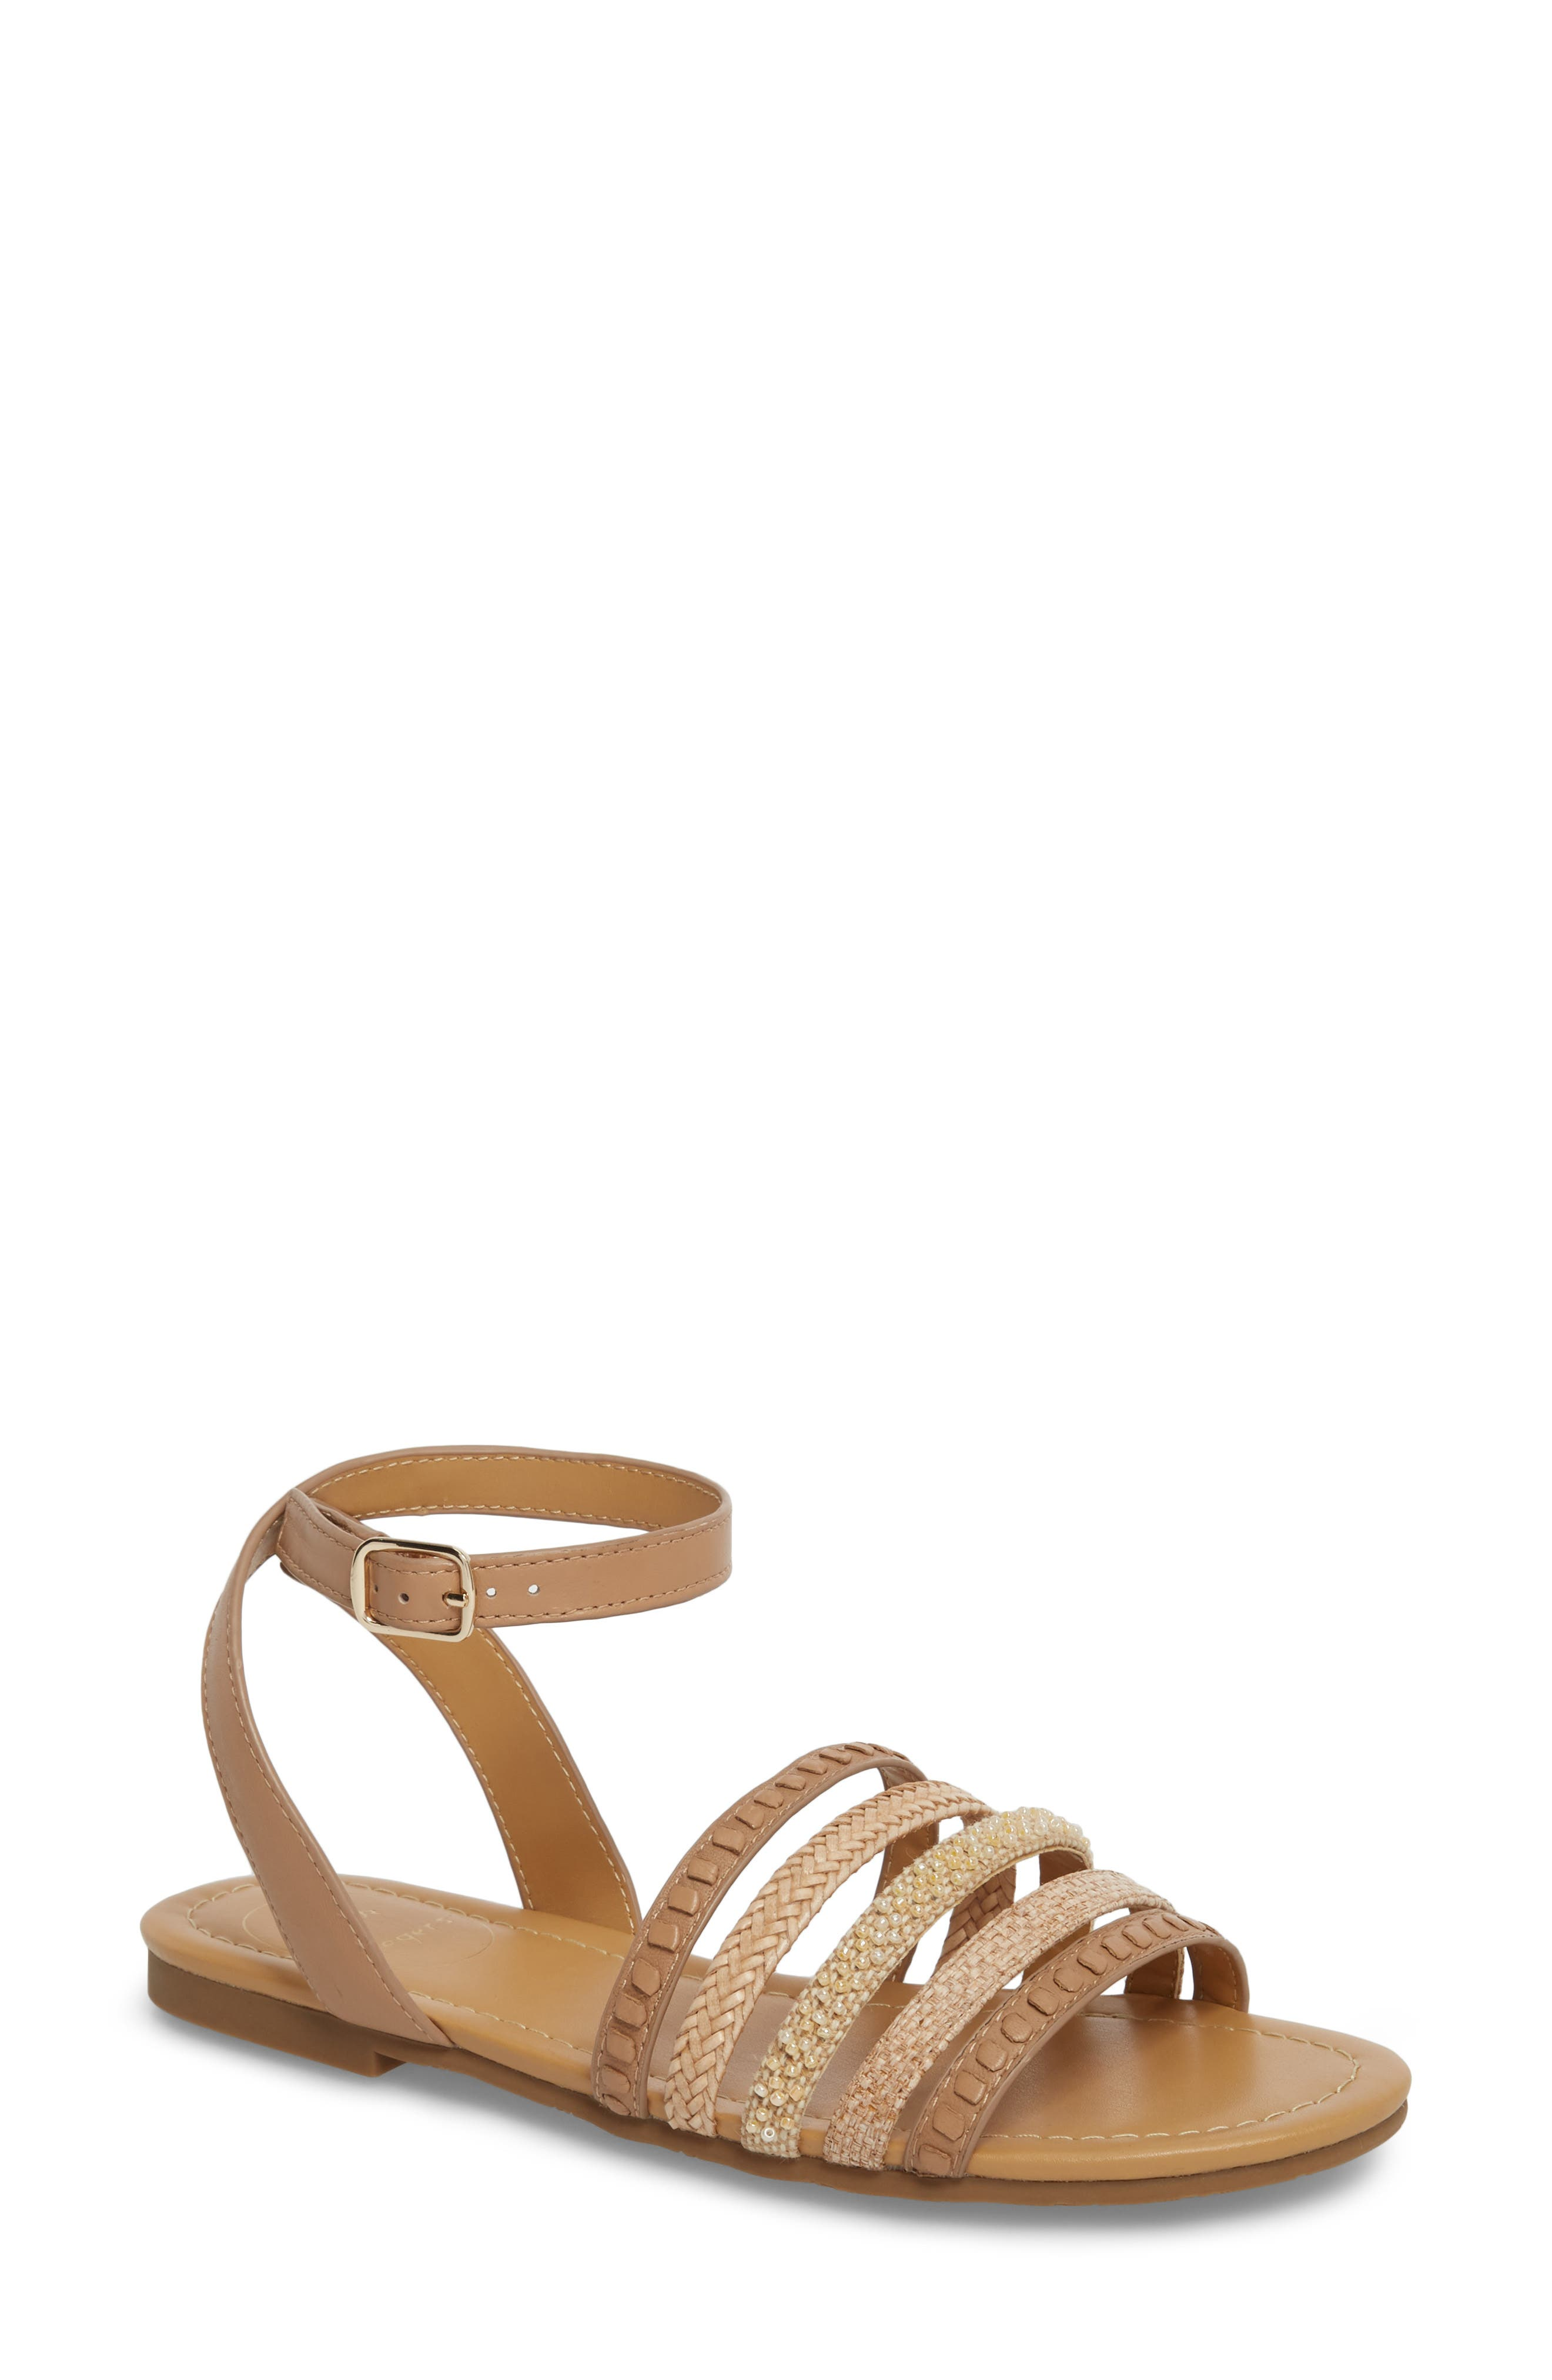 Jack Rogers Women's Hannah Braided Embellished Sandal